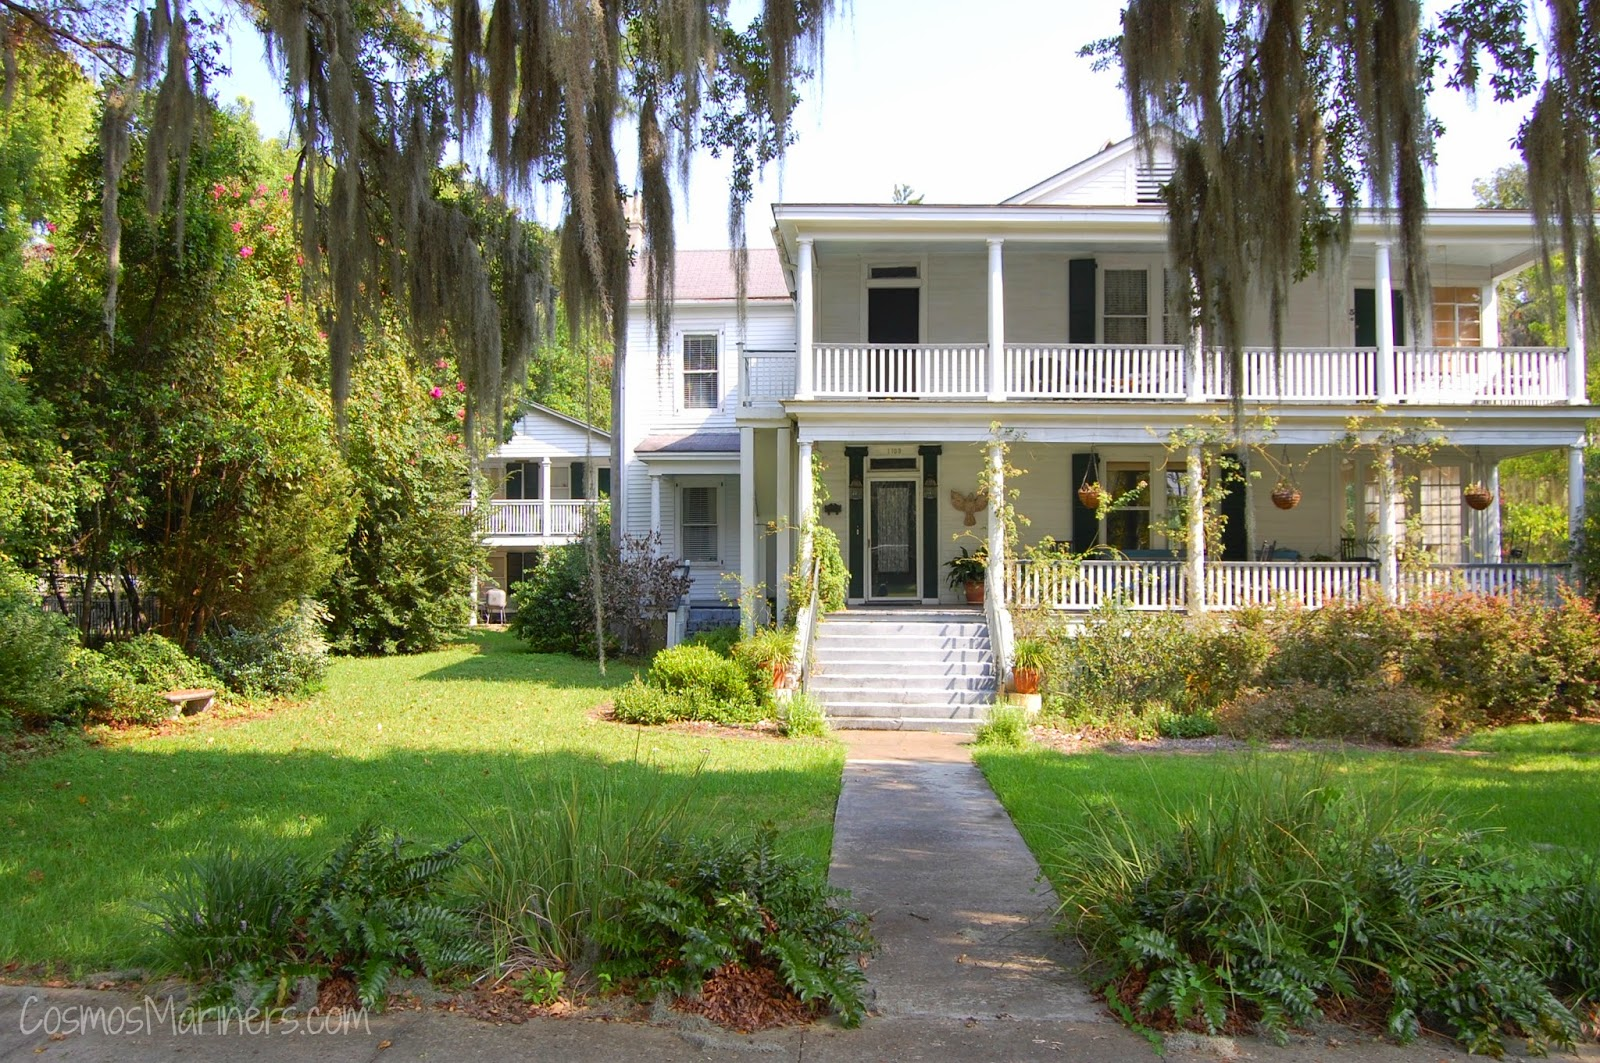 A Day Trip to Beaufort, South Carolina | CosmosMariners.com